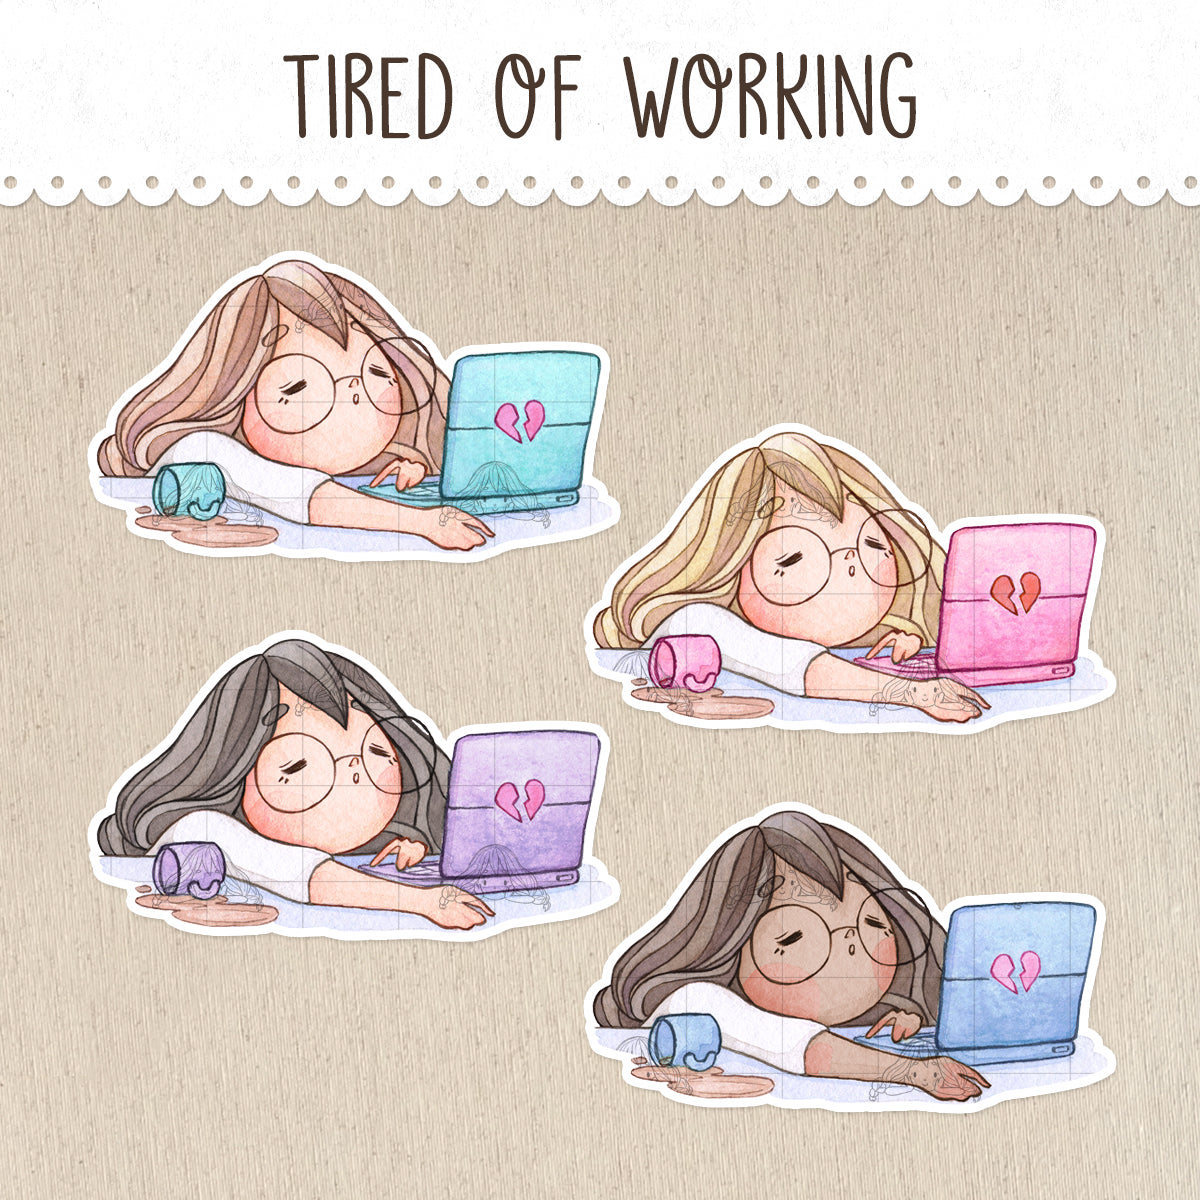 Working extra hours, Tired, Bored Decorative Stickers ~Kawaii girl: Vera, Valerie and Violet~